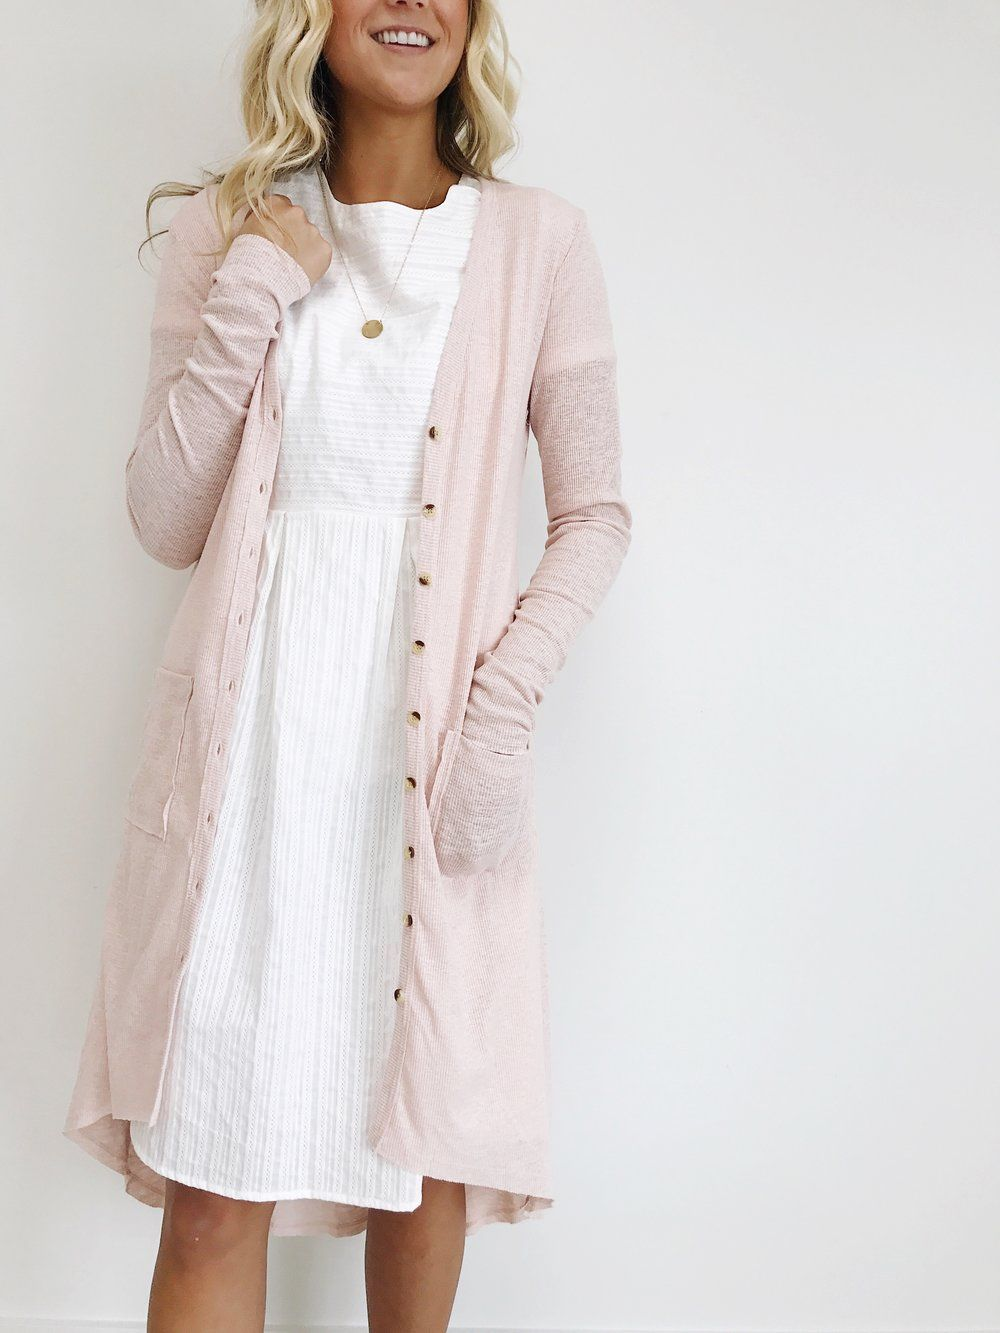 Shop a great selection of Sweaters for Women at Nordstrom Rack. Find designer Sweaters for Women up to 70% off and get free shipping on orders over $